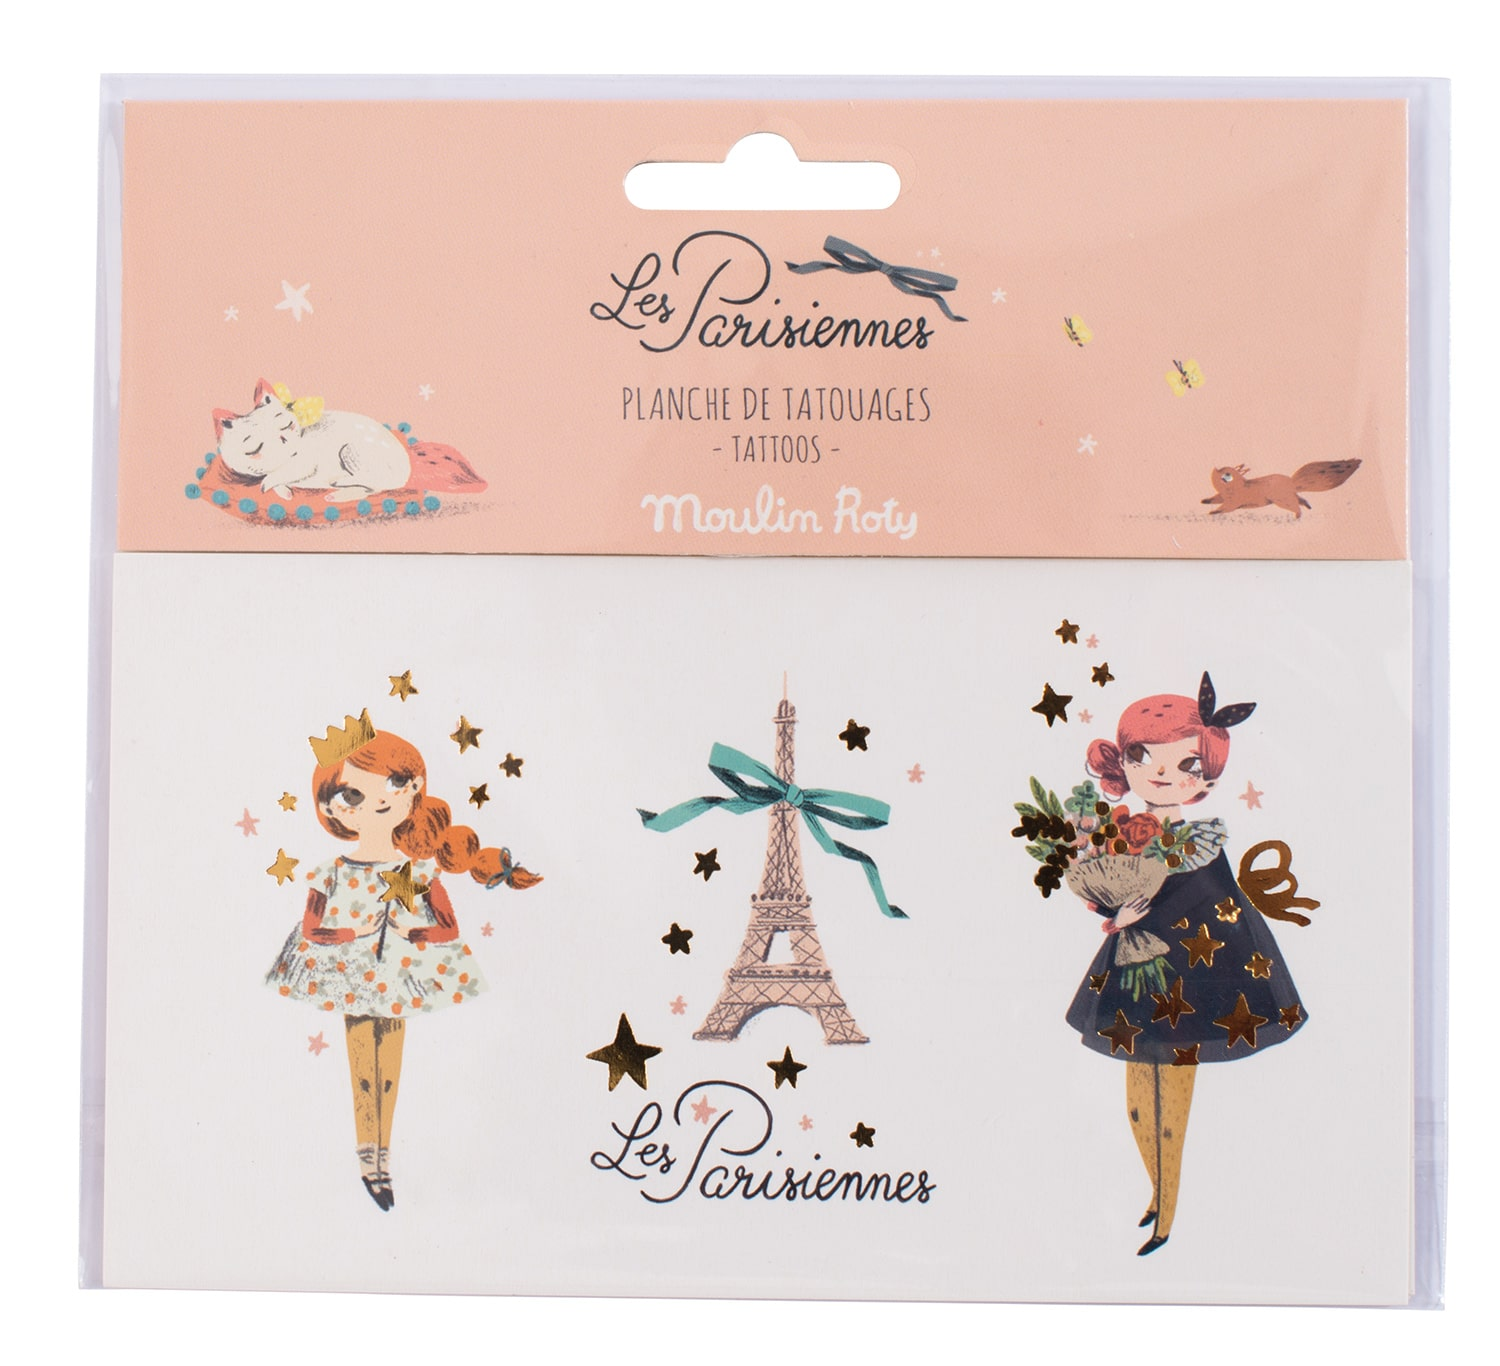 Temporary tattoo's of Les Parisiennes character and the Eiffel tower - Moulin Roty 642 555